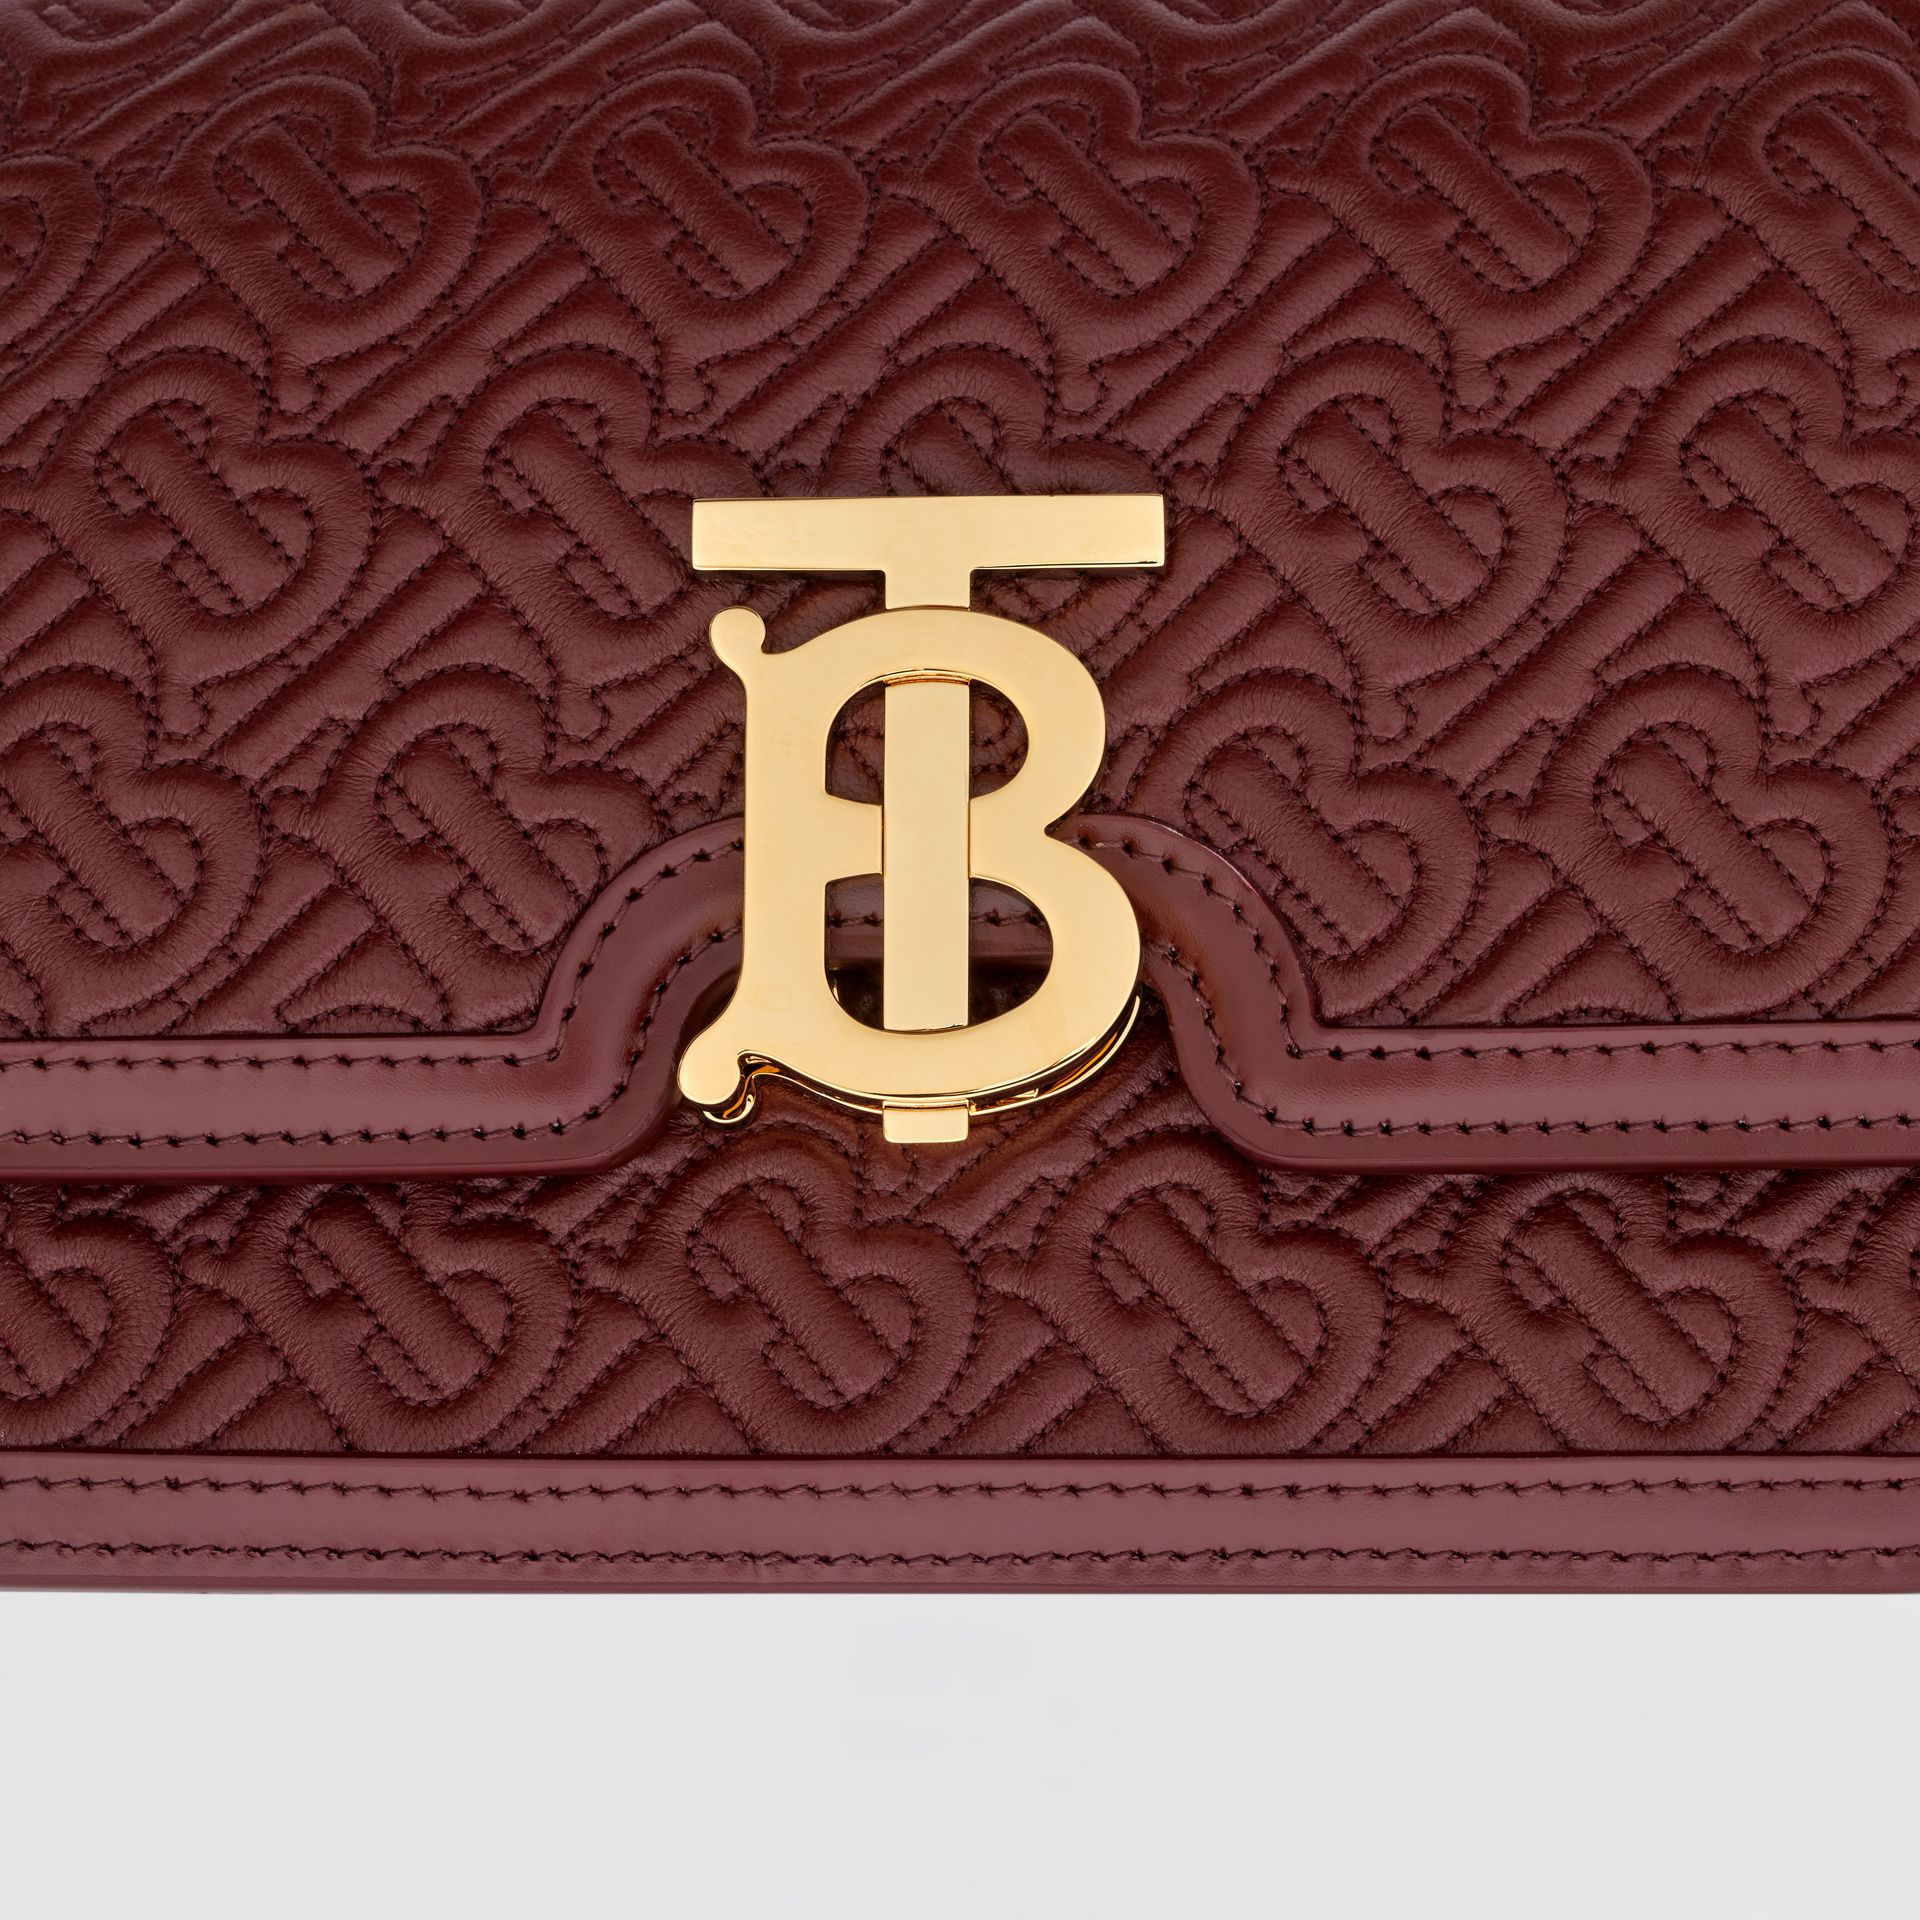 Small Quilted Monogram Lambskin TB Bag in Oxblood - Women | Burberry United Kingdom - gallery image 1